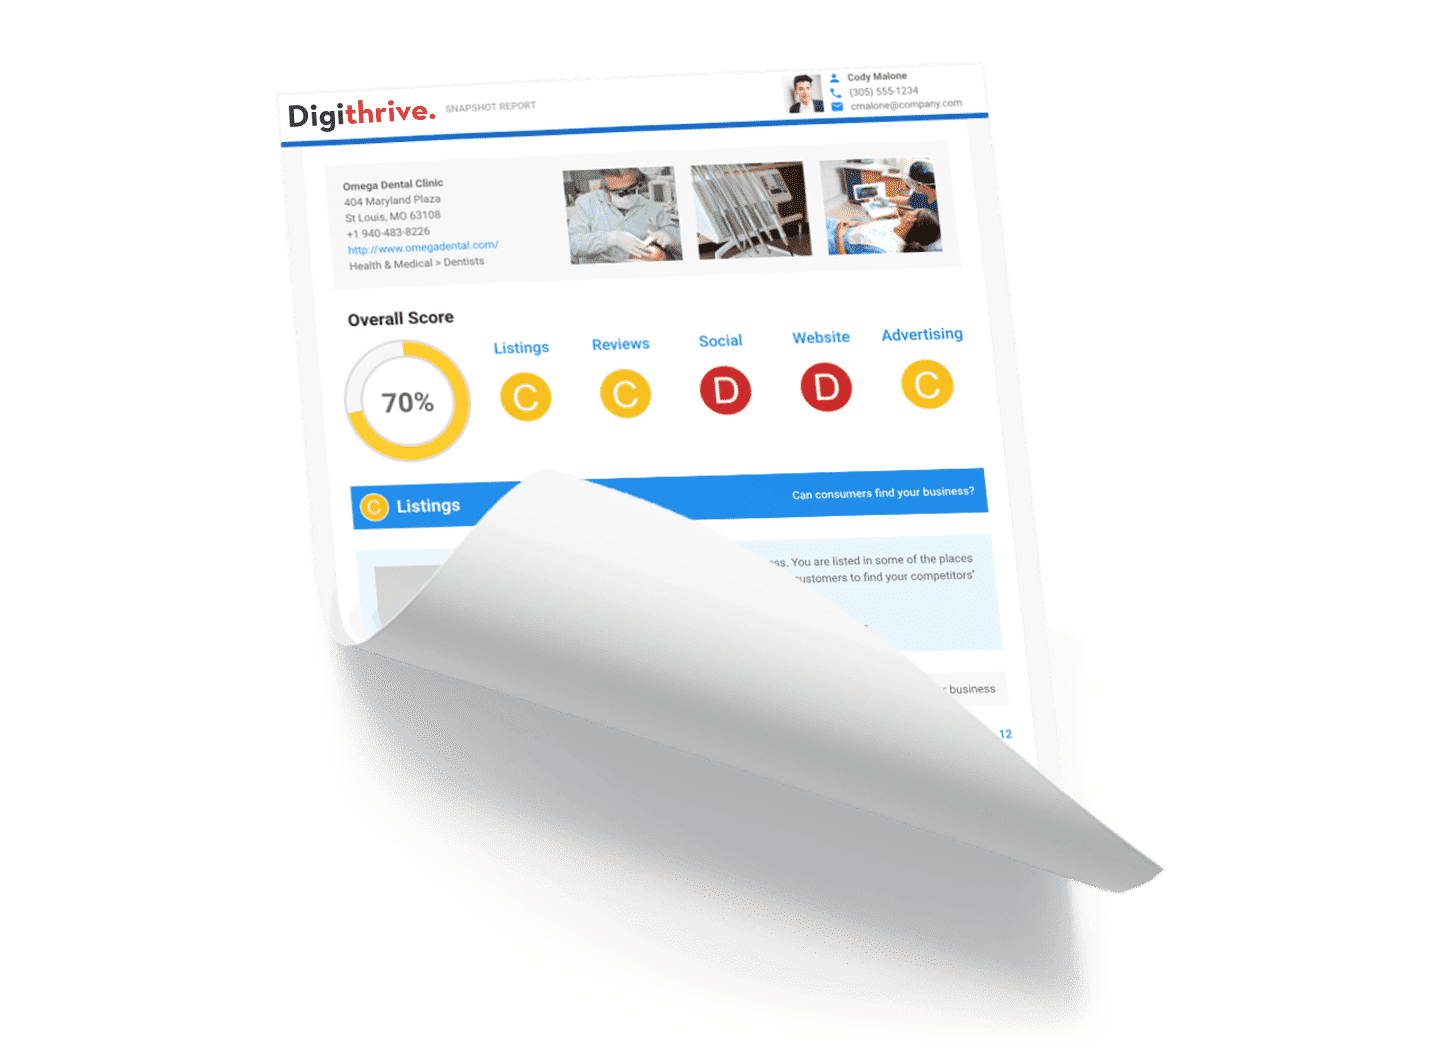 Digithrive